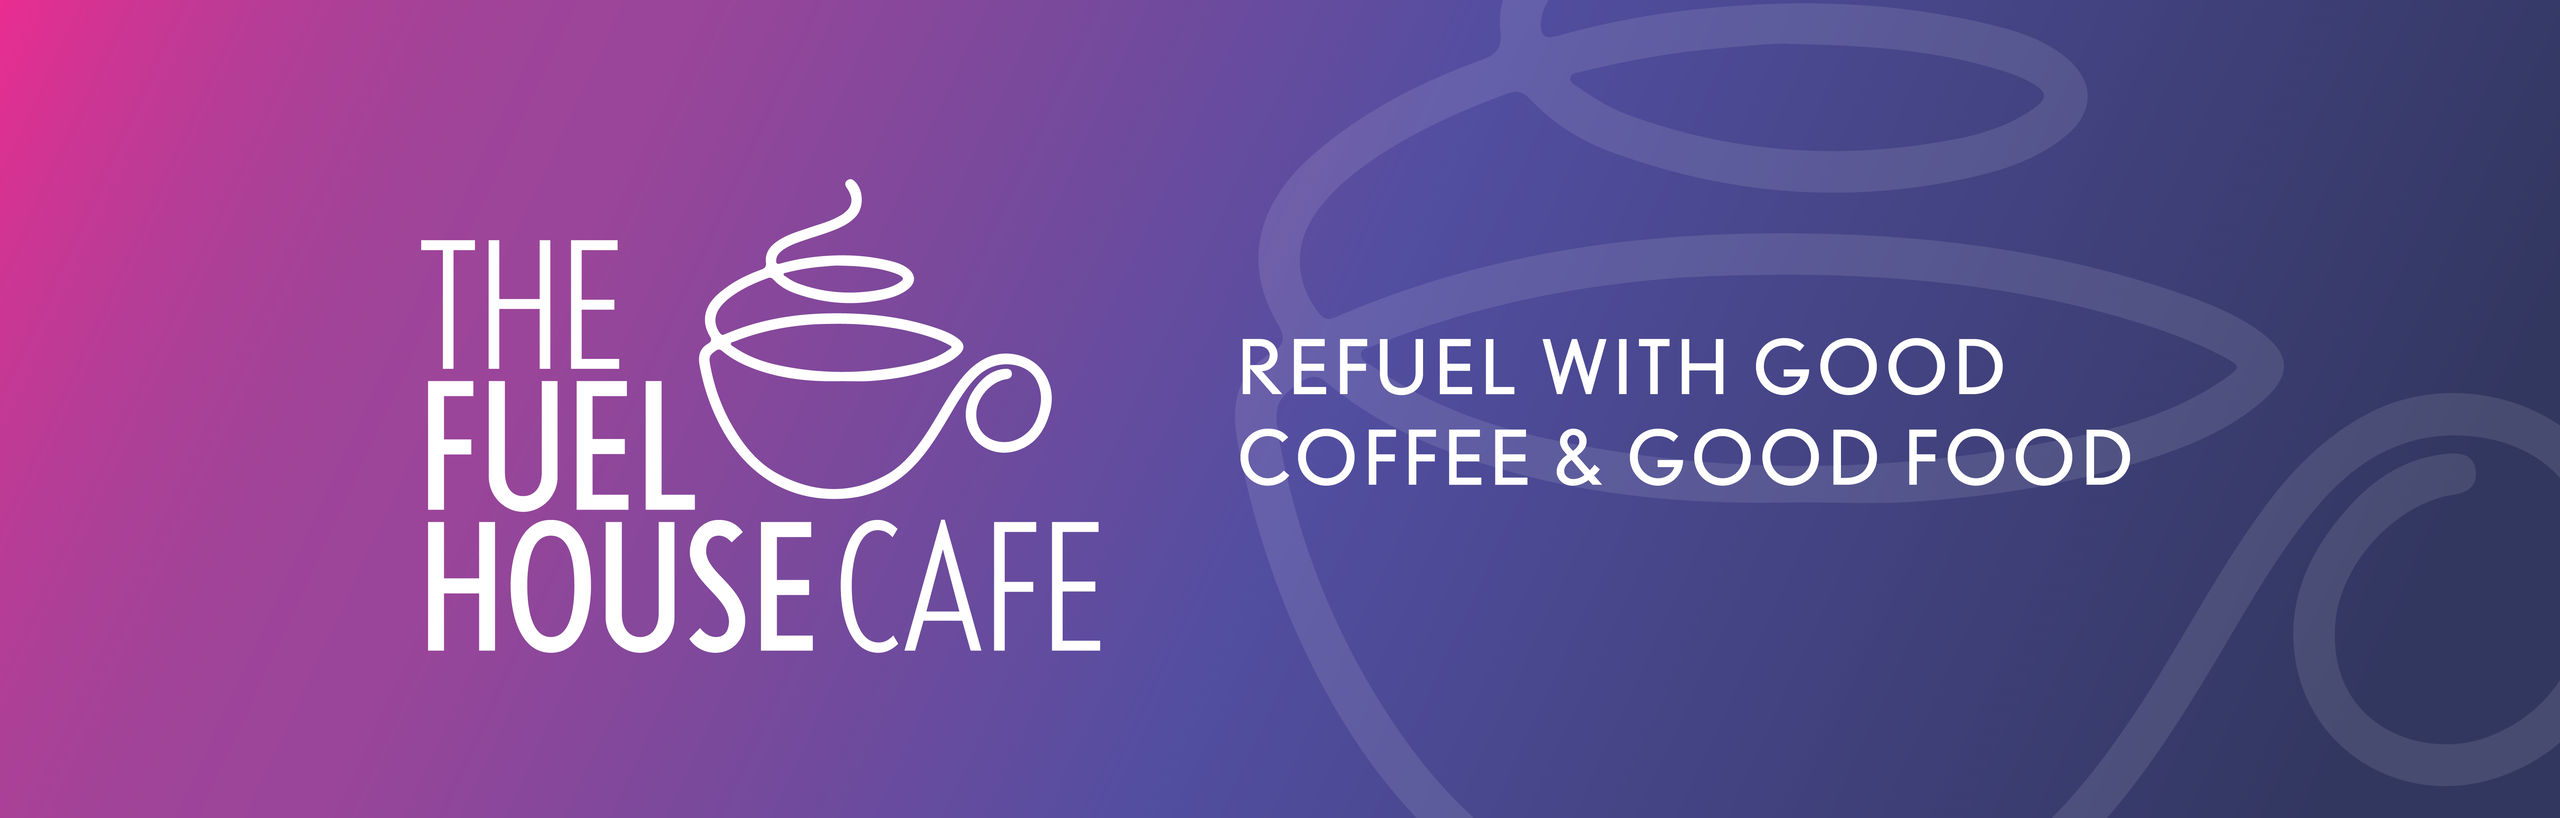 The Fuel House Cafe, refuel with good coffee & good food